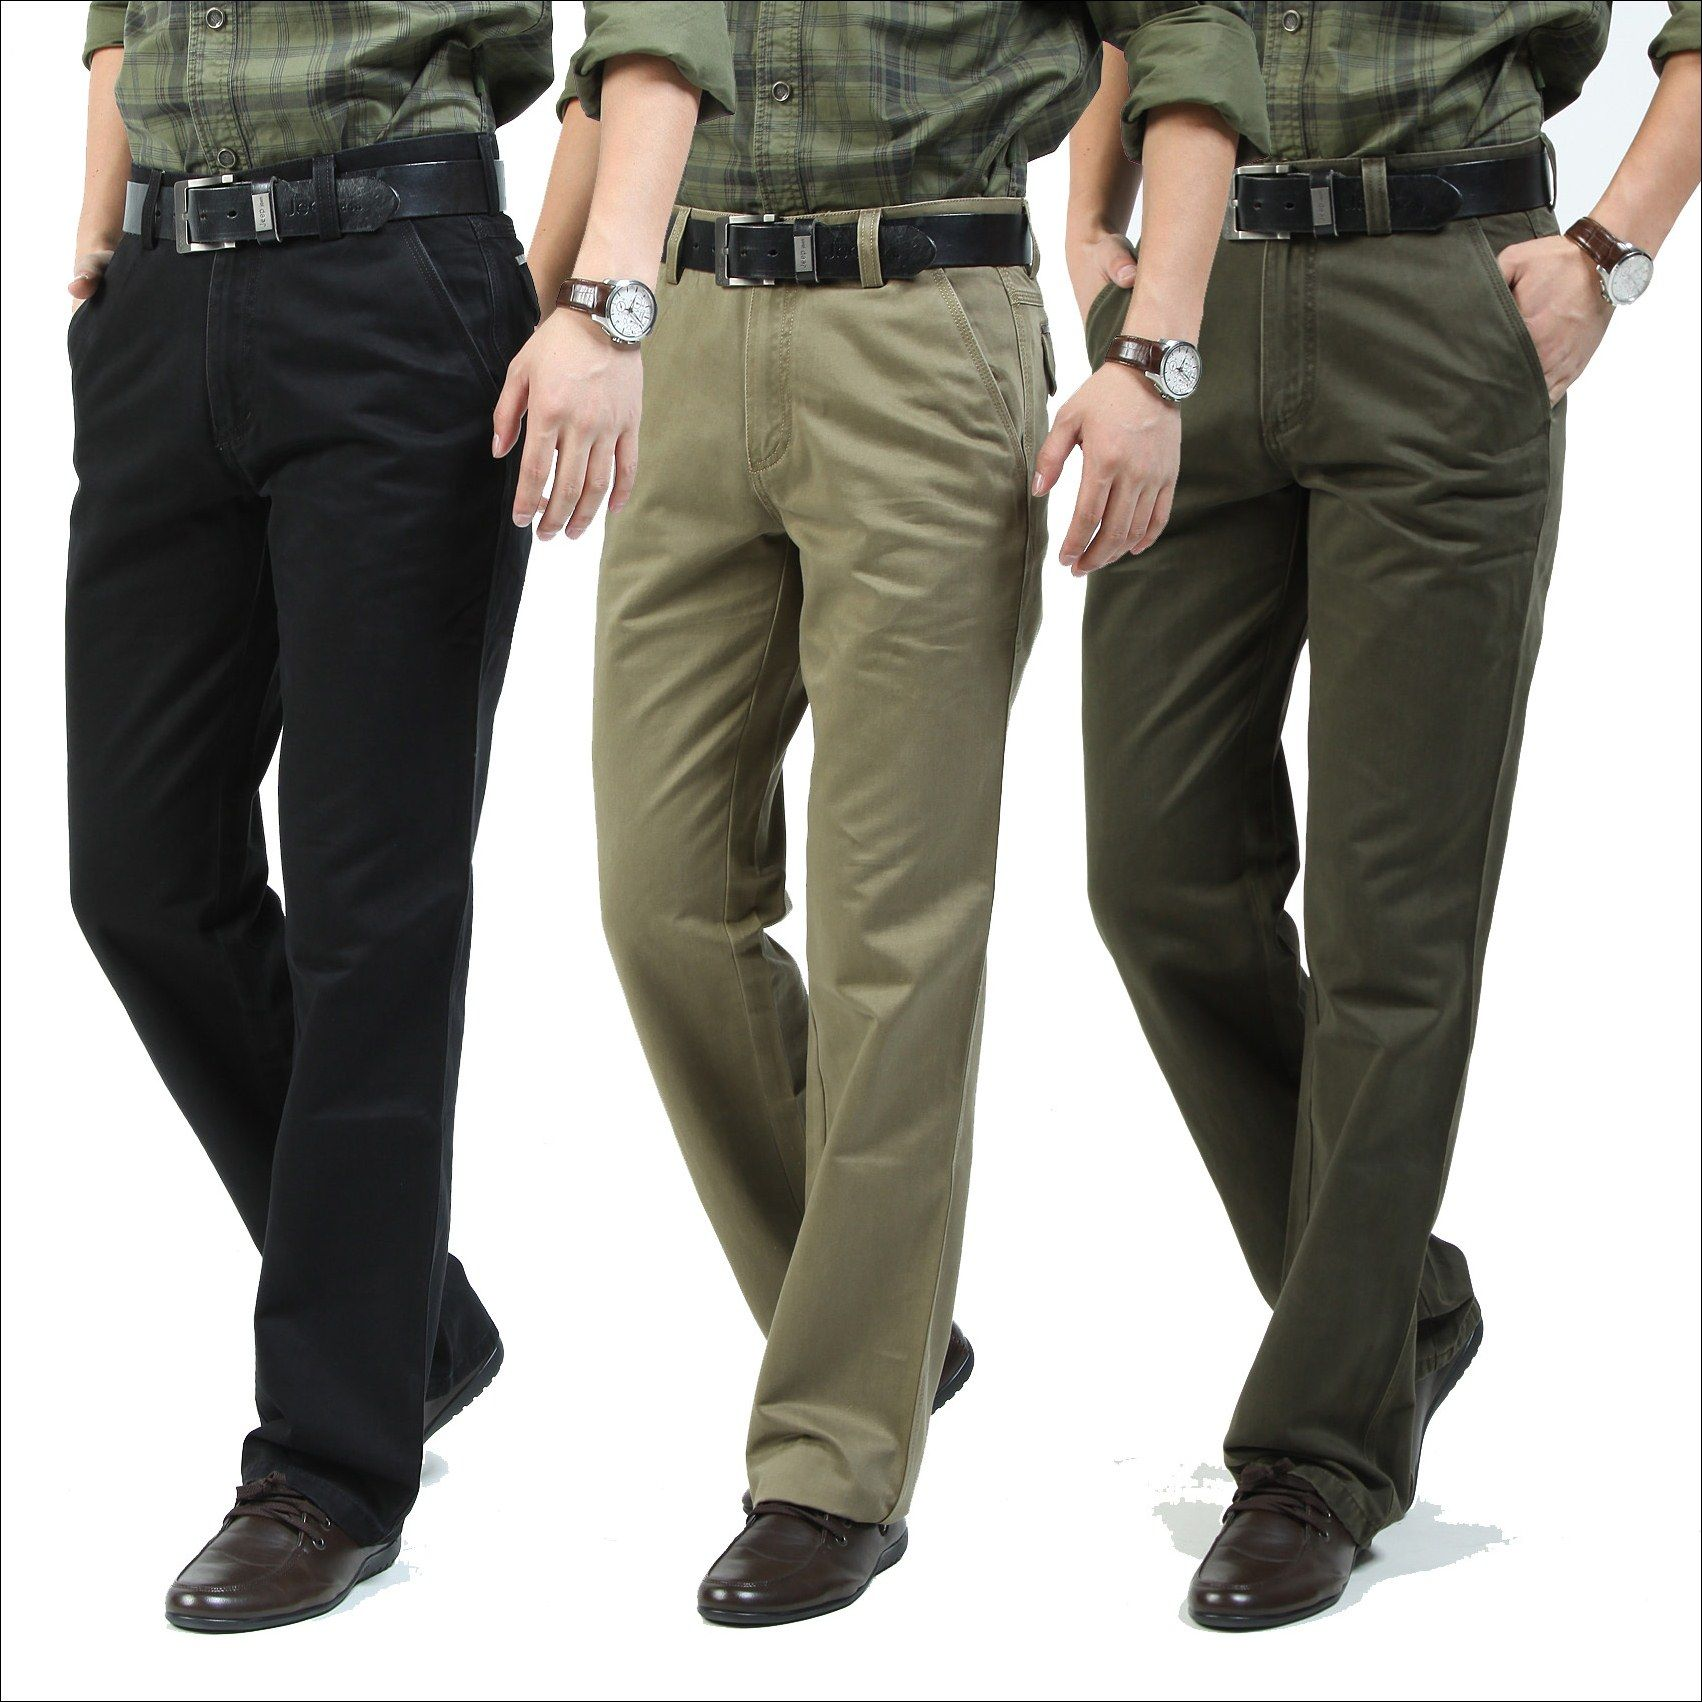 Casual Dress Pants For Office Use In Modern Times Men S Are Very Conscious About